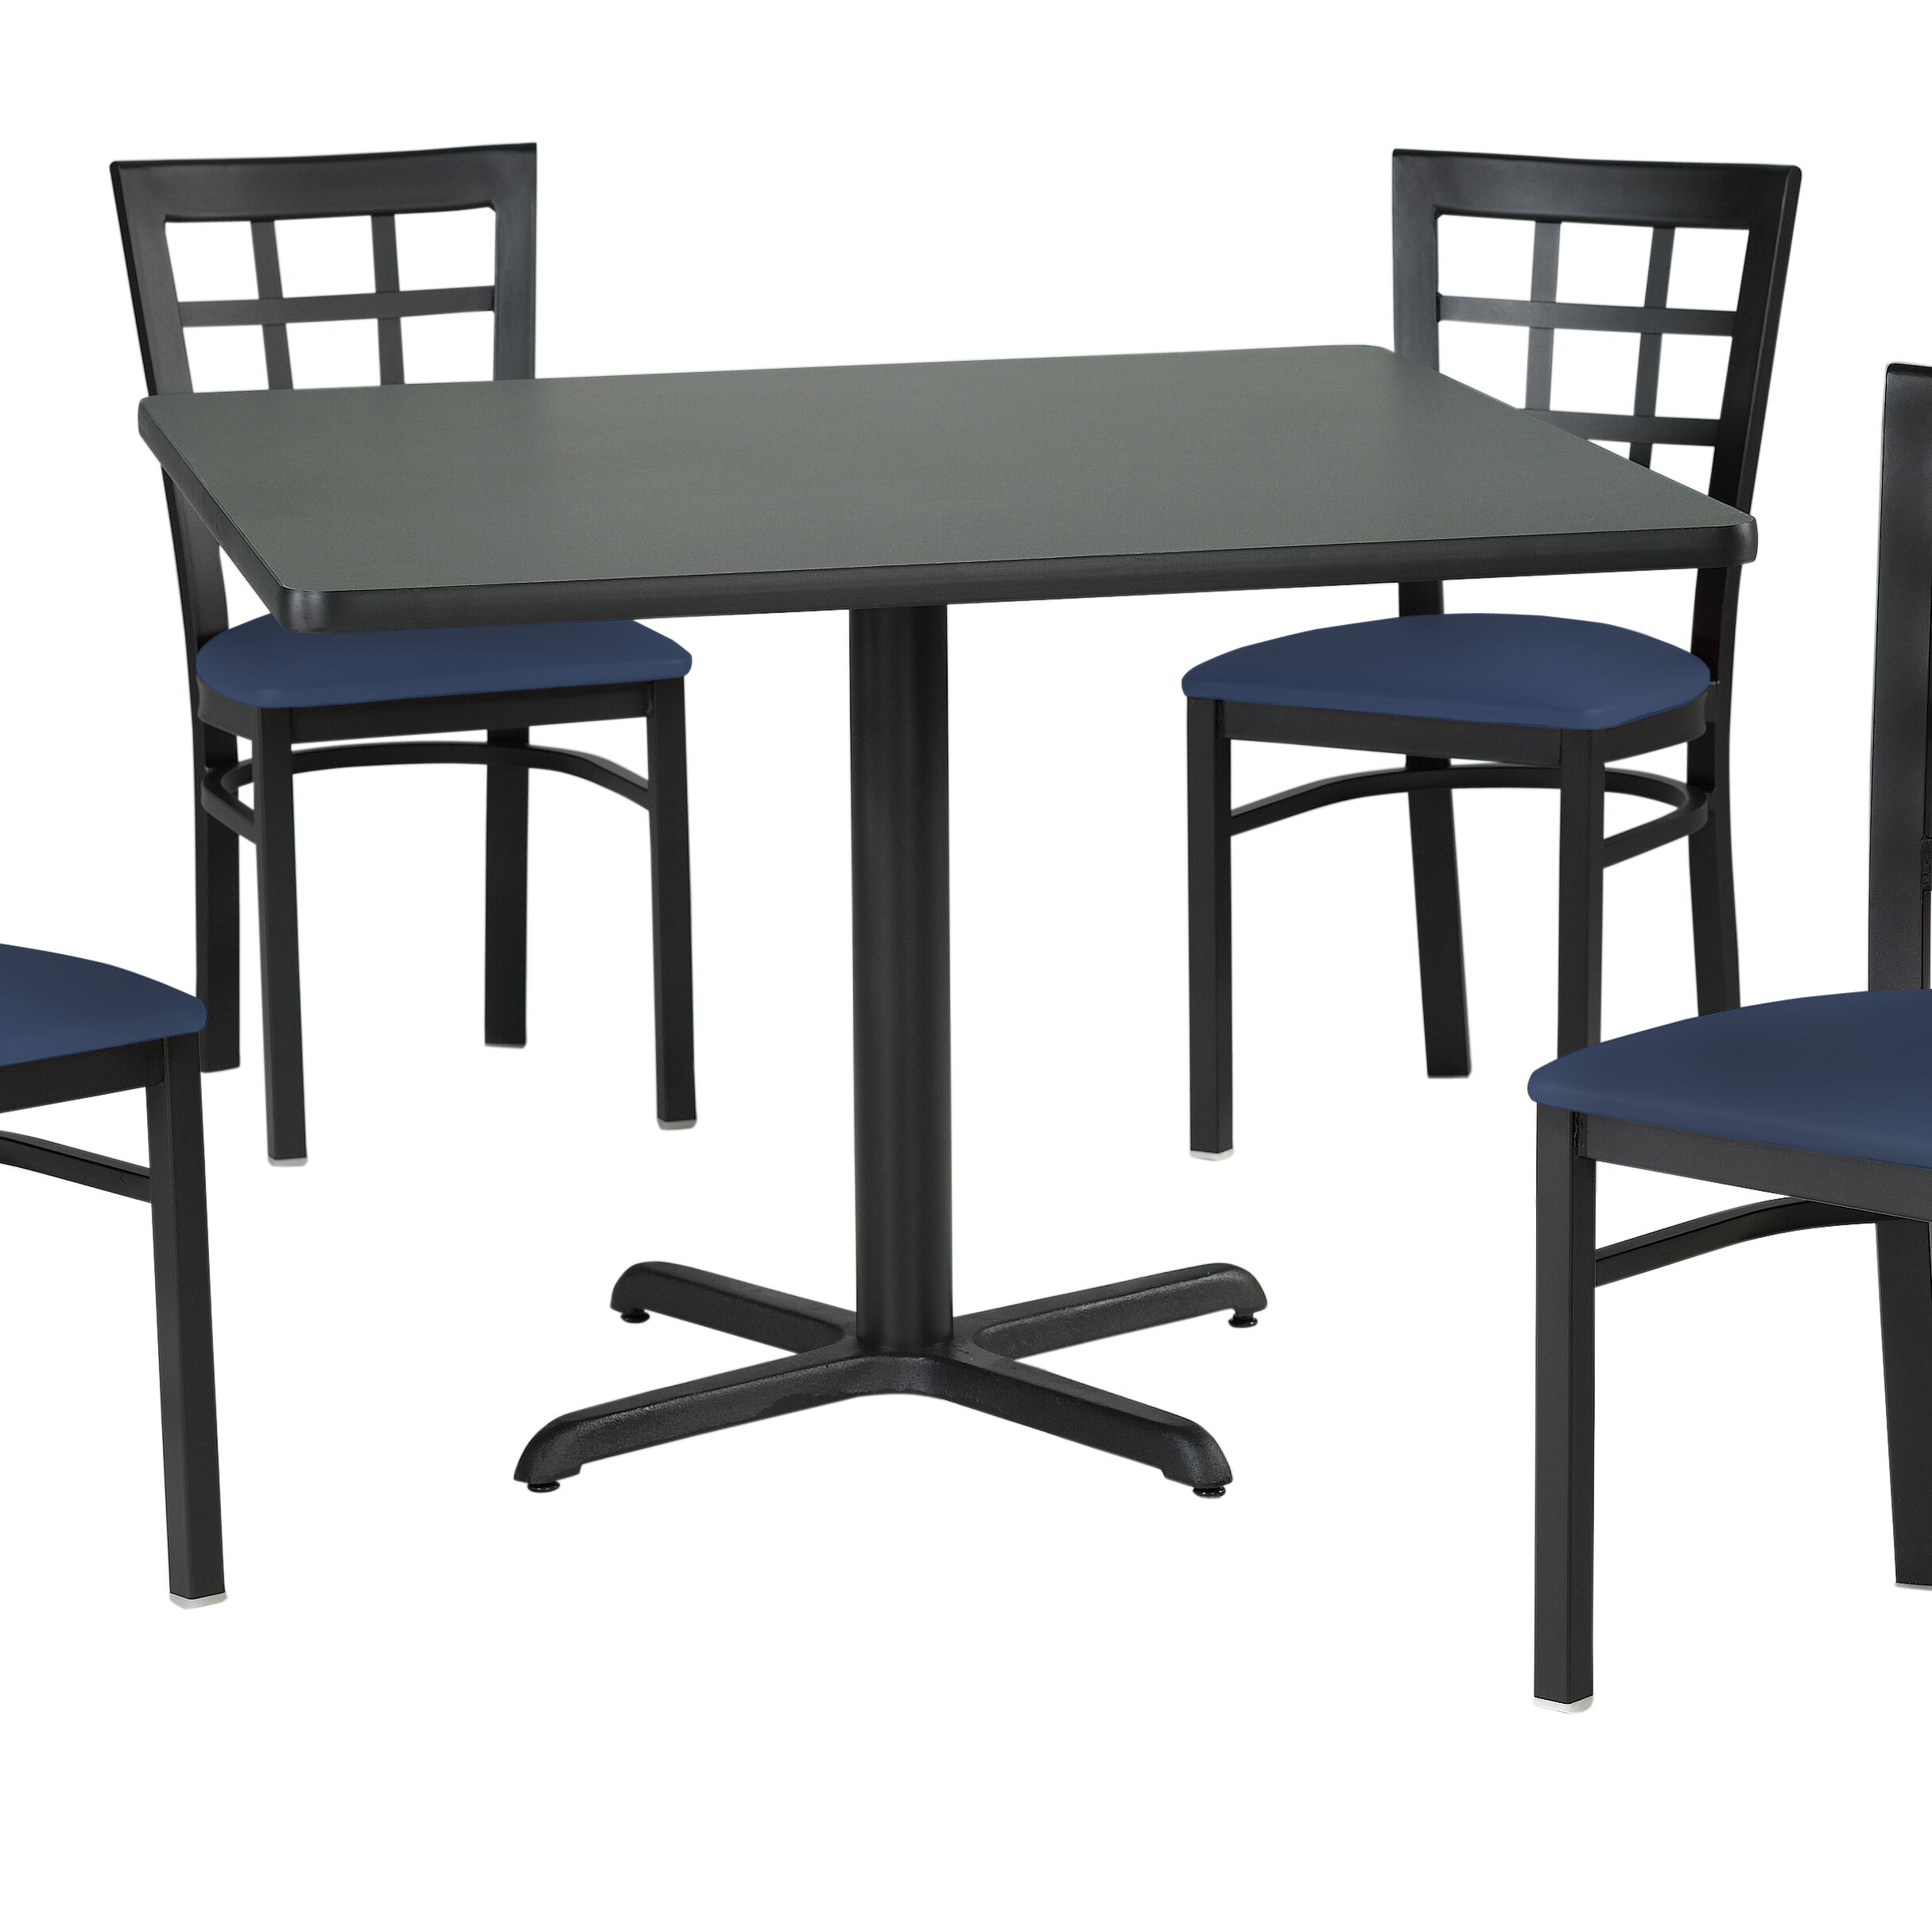 Premier hospitality furniture dining table wayfair for Table 85 restaurant